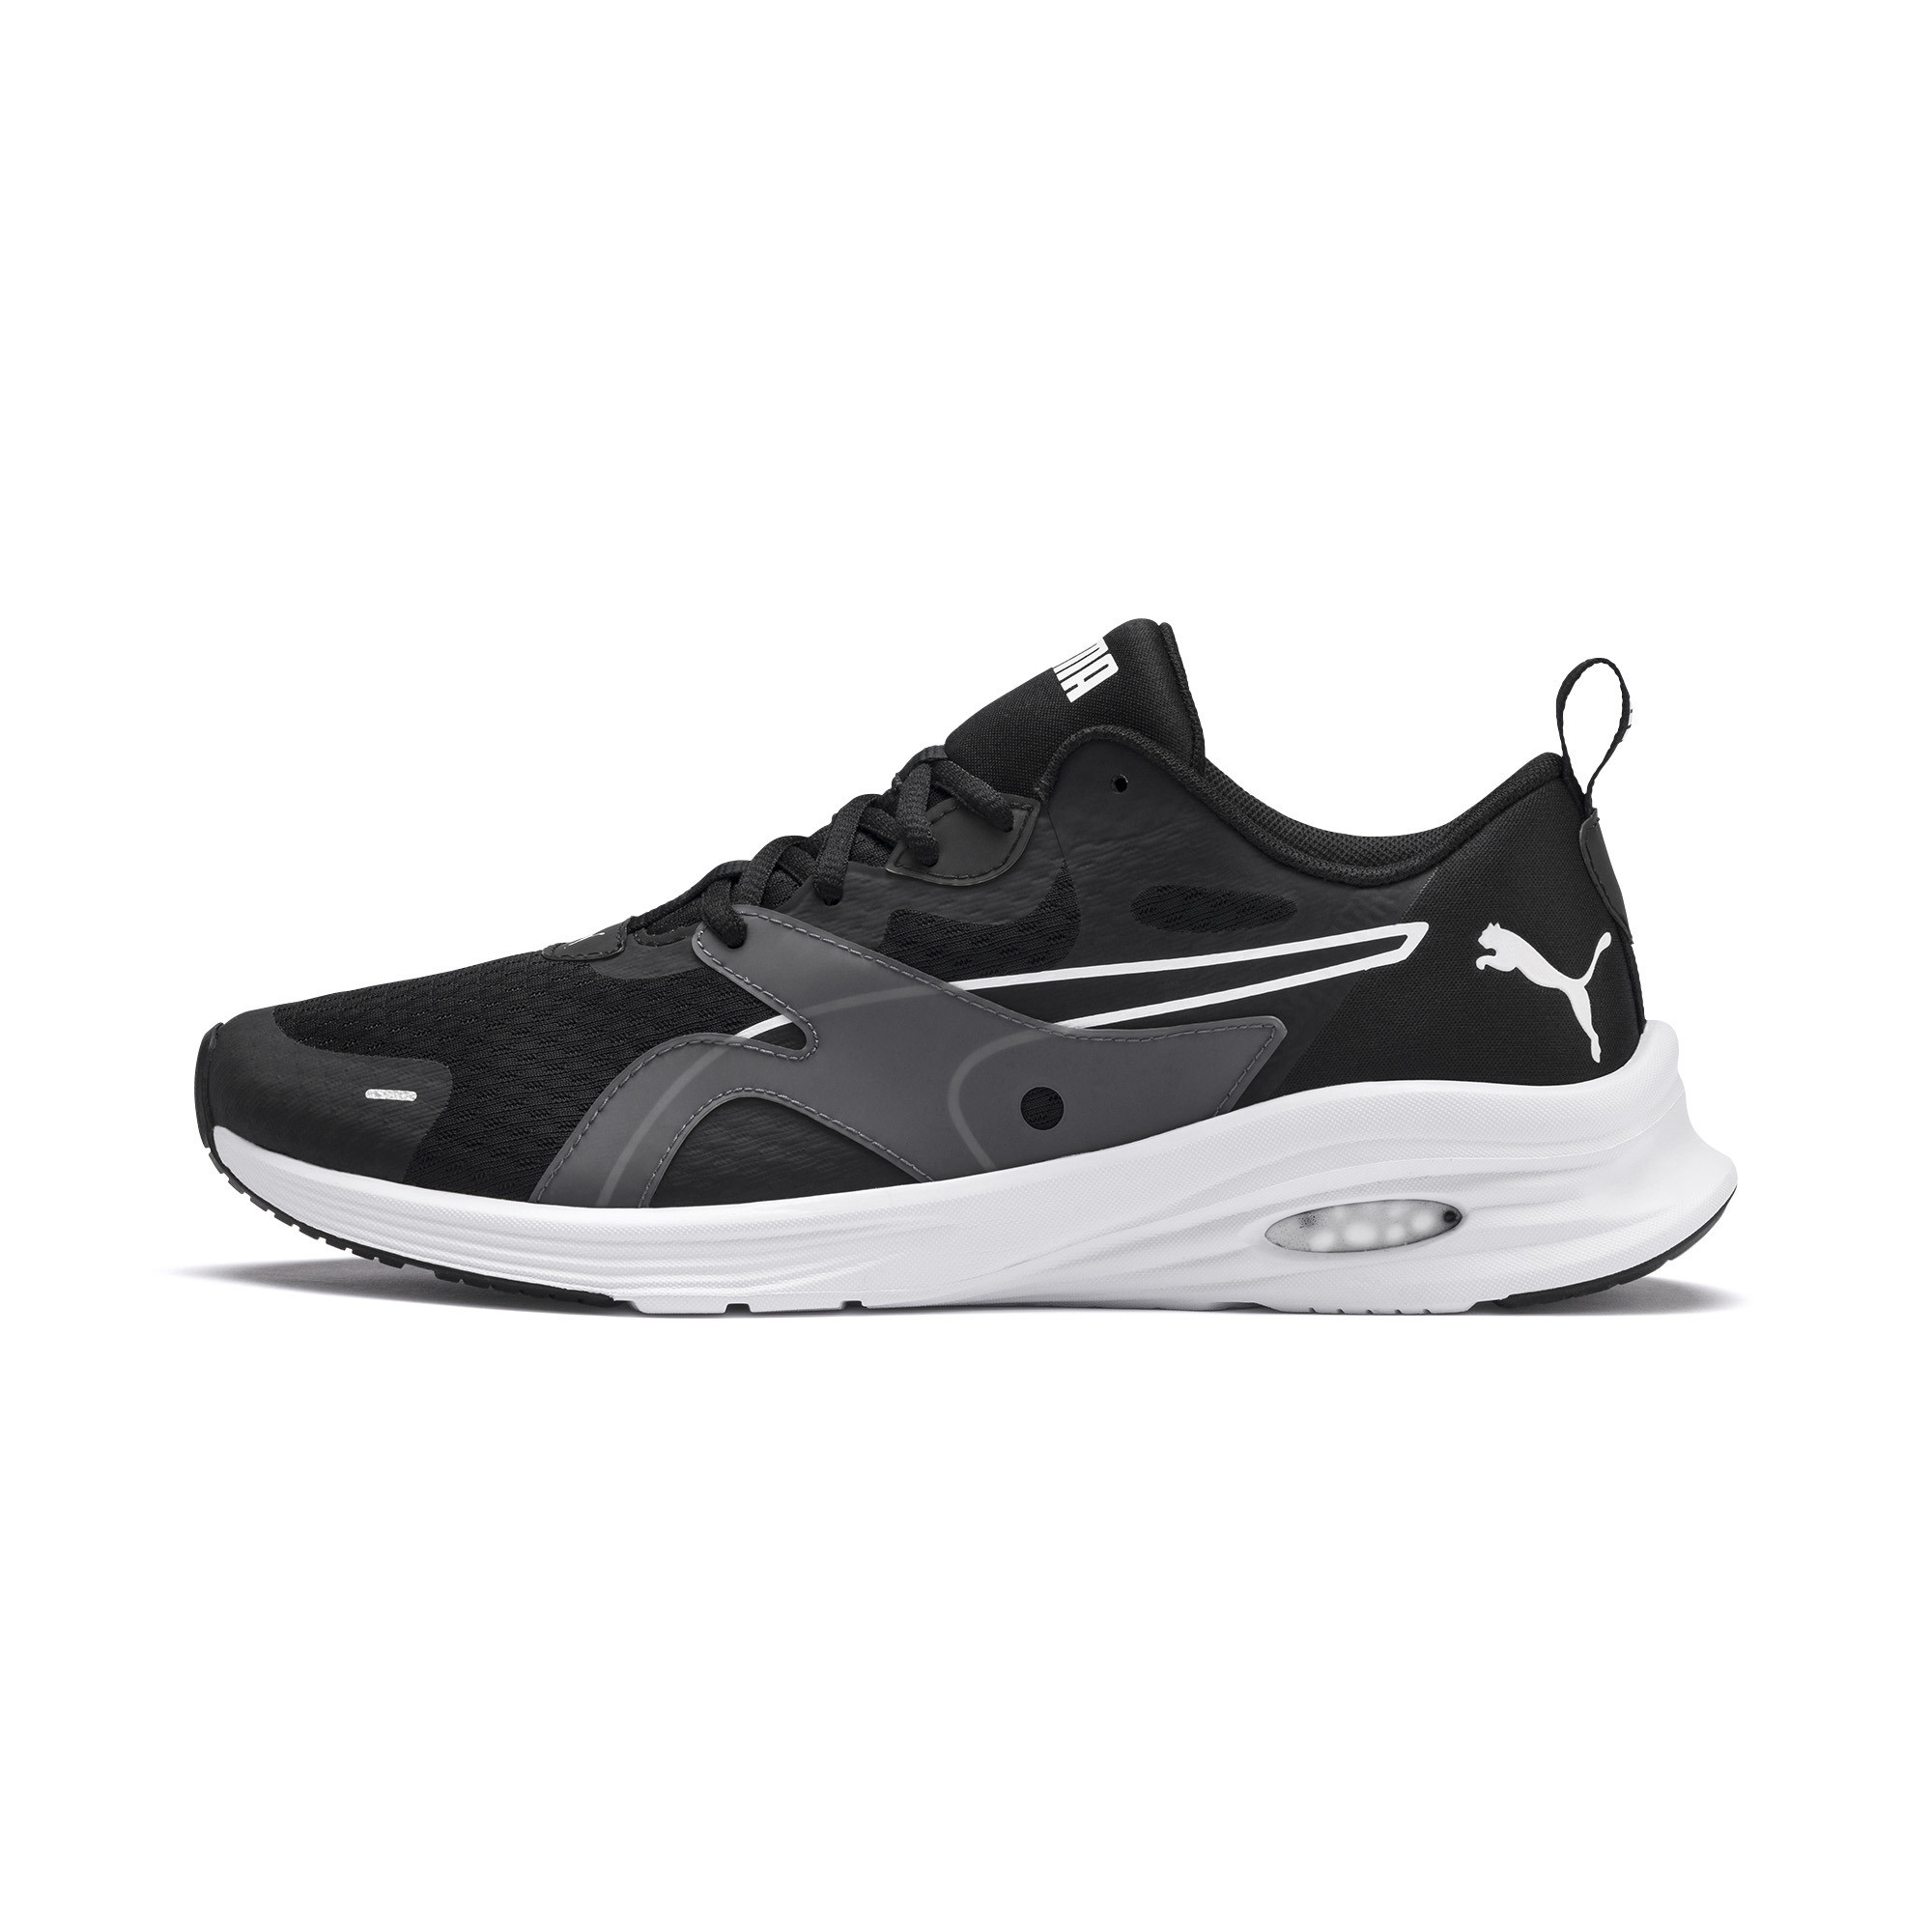 PUMA-Men-039-s-HYBRID-Fuego-Running-Shoes thumbnail 12